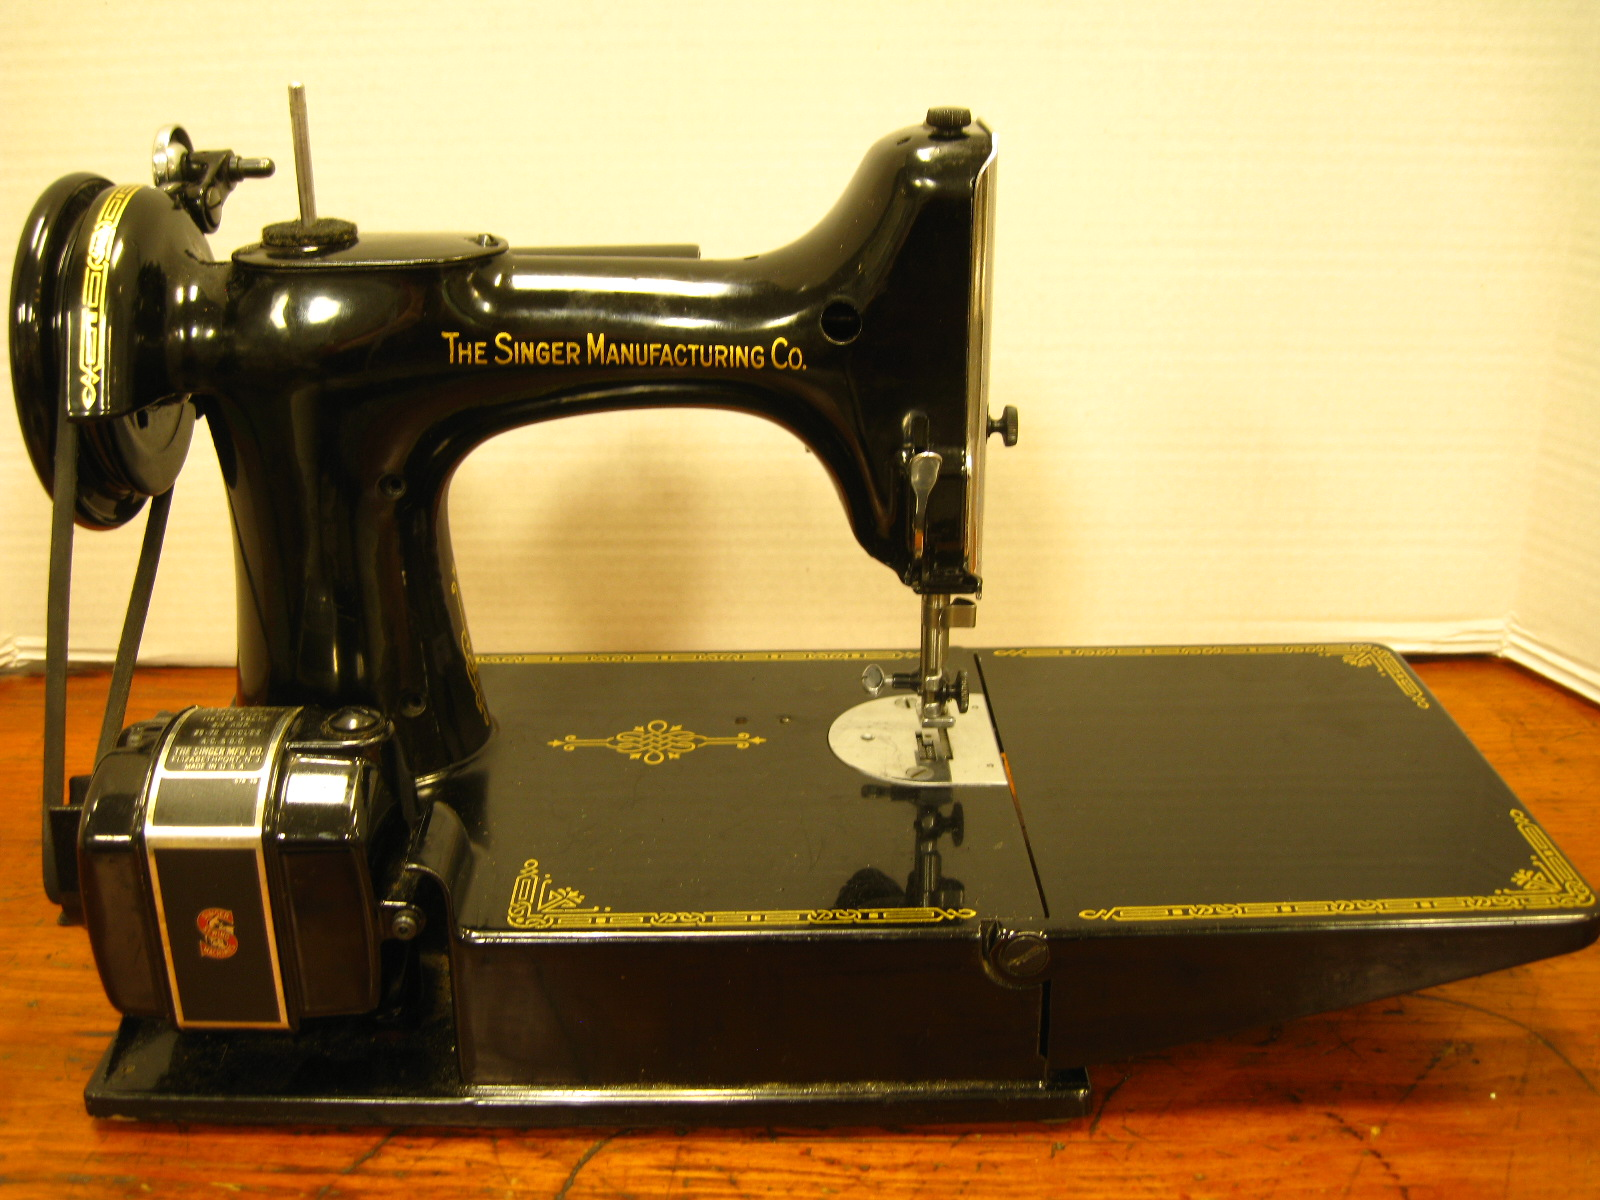 This is a great Singer Sewing machine with case, pedal, and vintage Singer  manual.